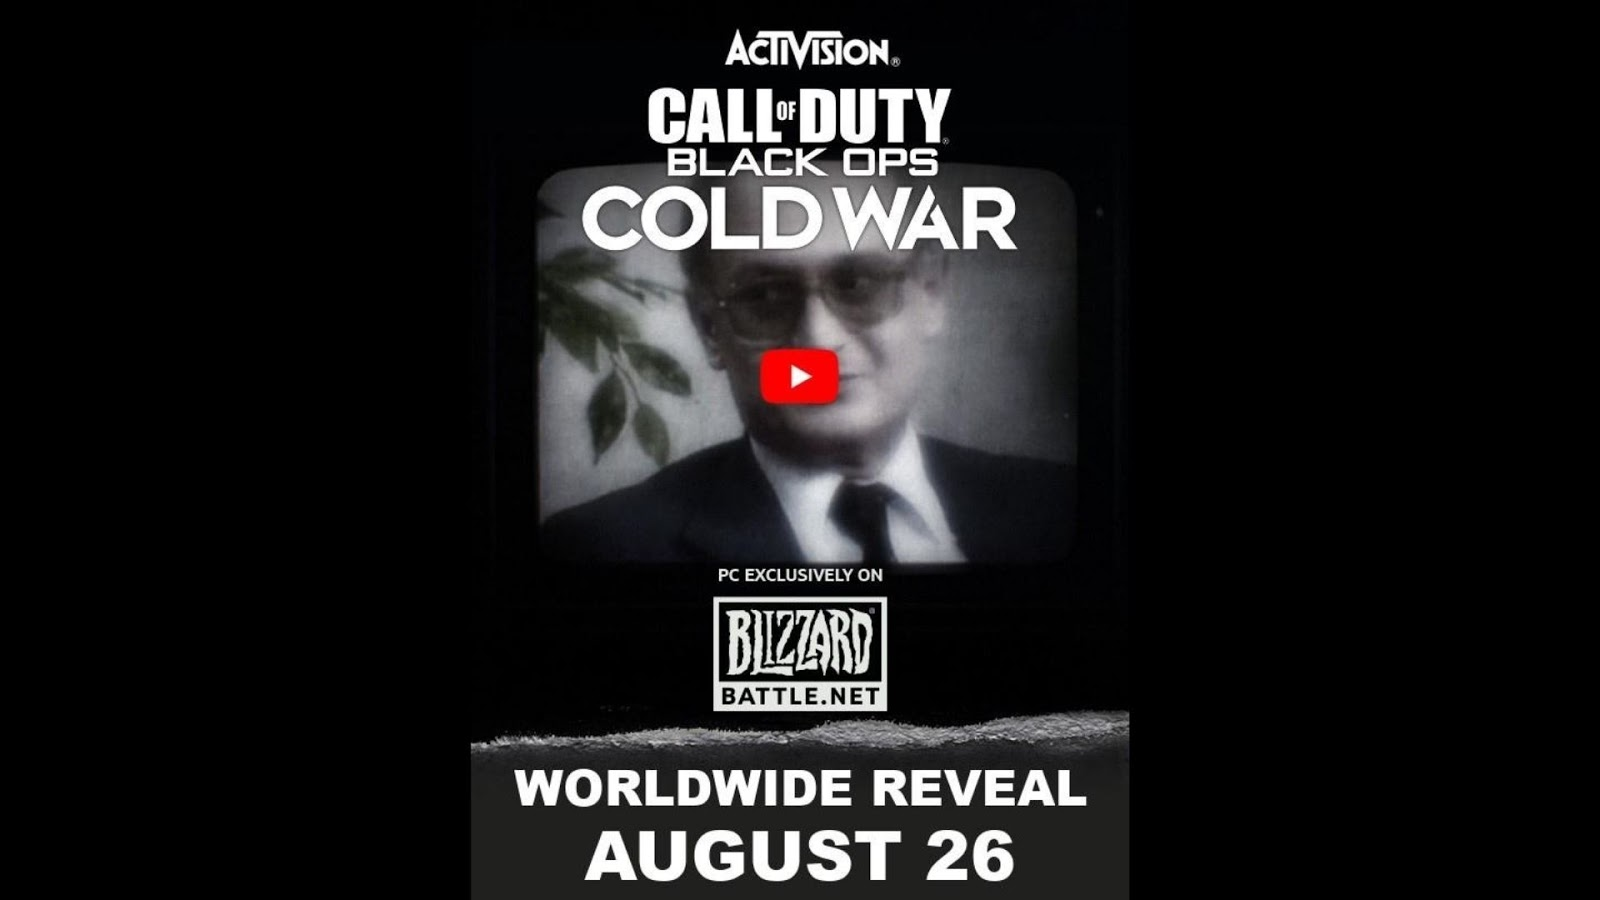 New Call Of Duty Black Ops Cold War Trailer Revieal Gamer Full Stop Latest Video Game Information News